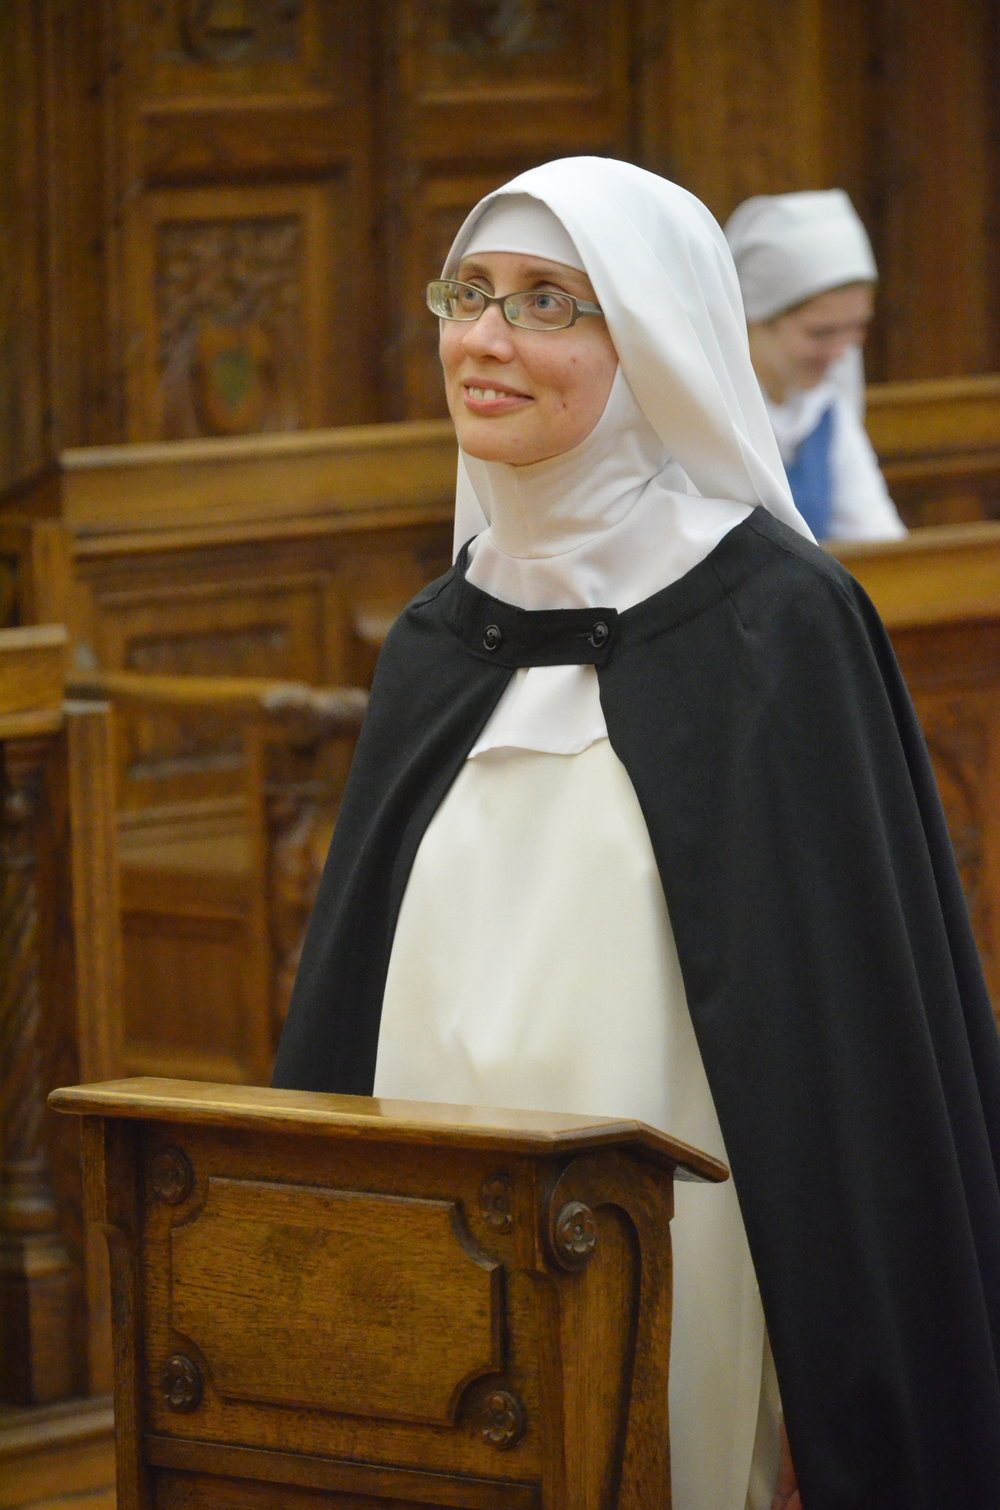 Sr. Maria Johanna's First Profession Mass